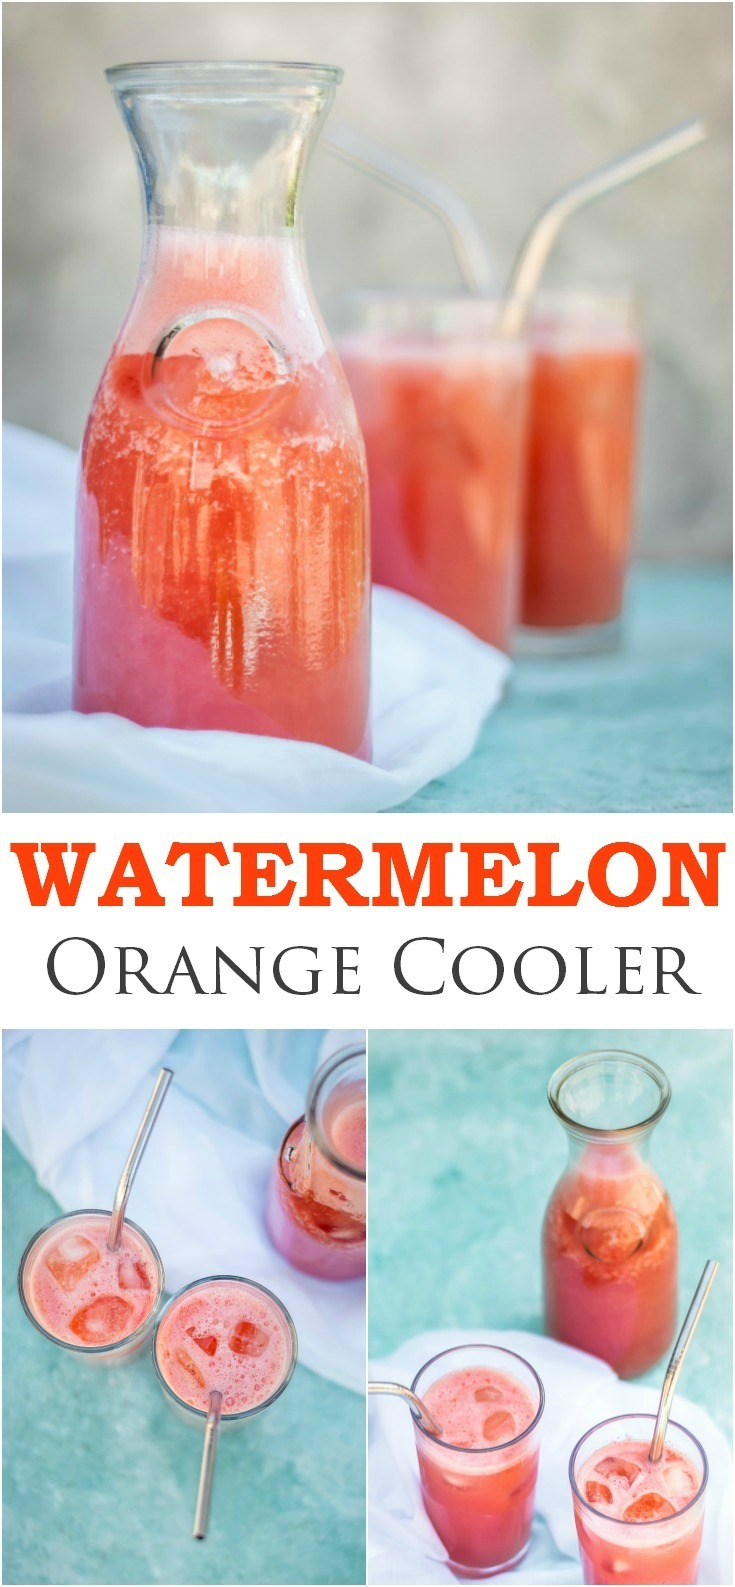 Watermelon and Orange Cooler